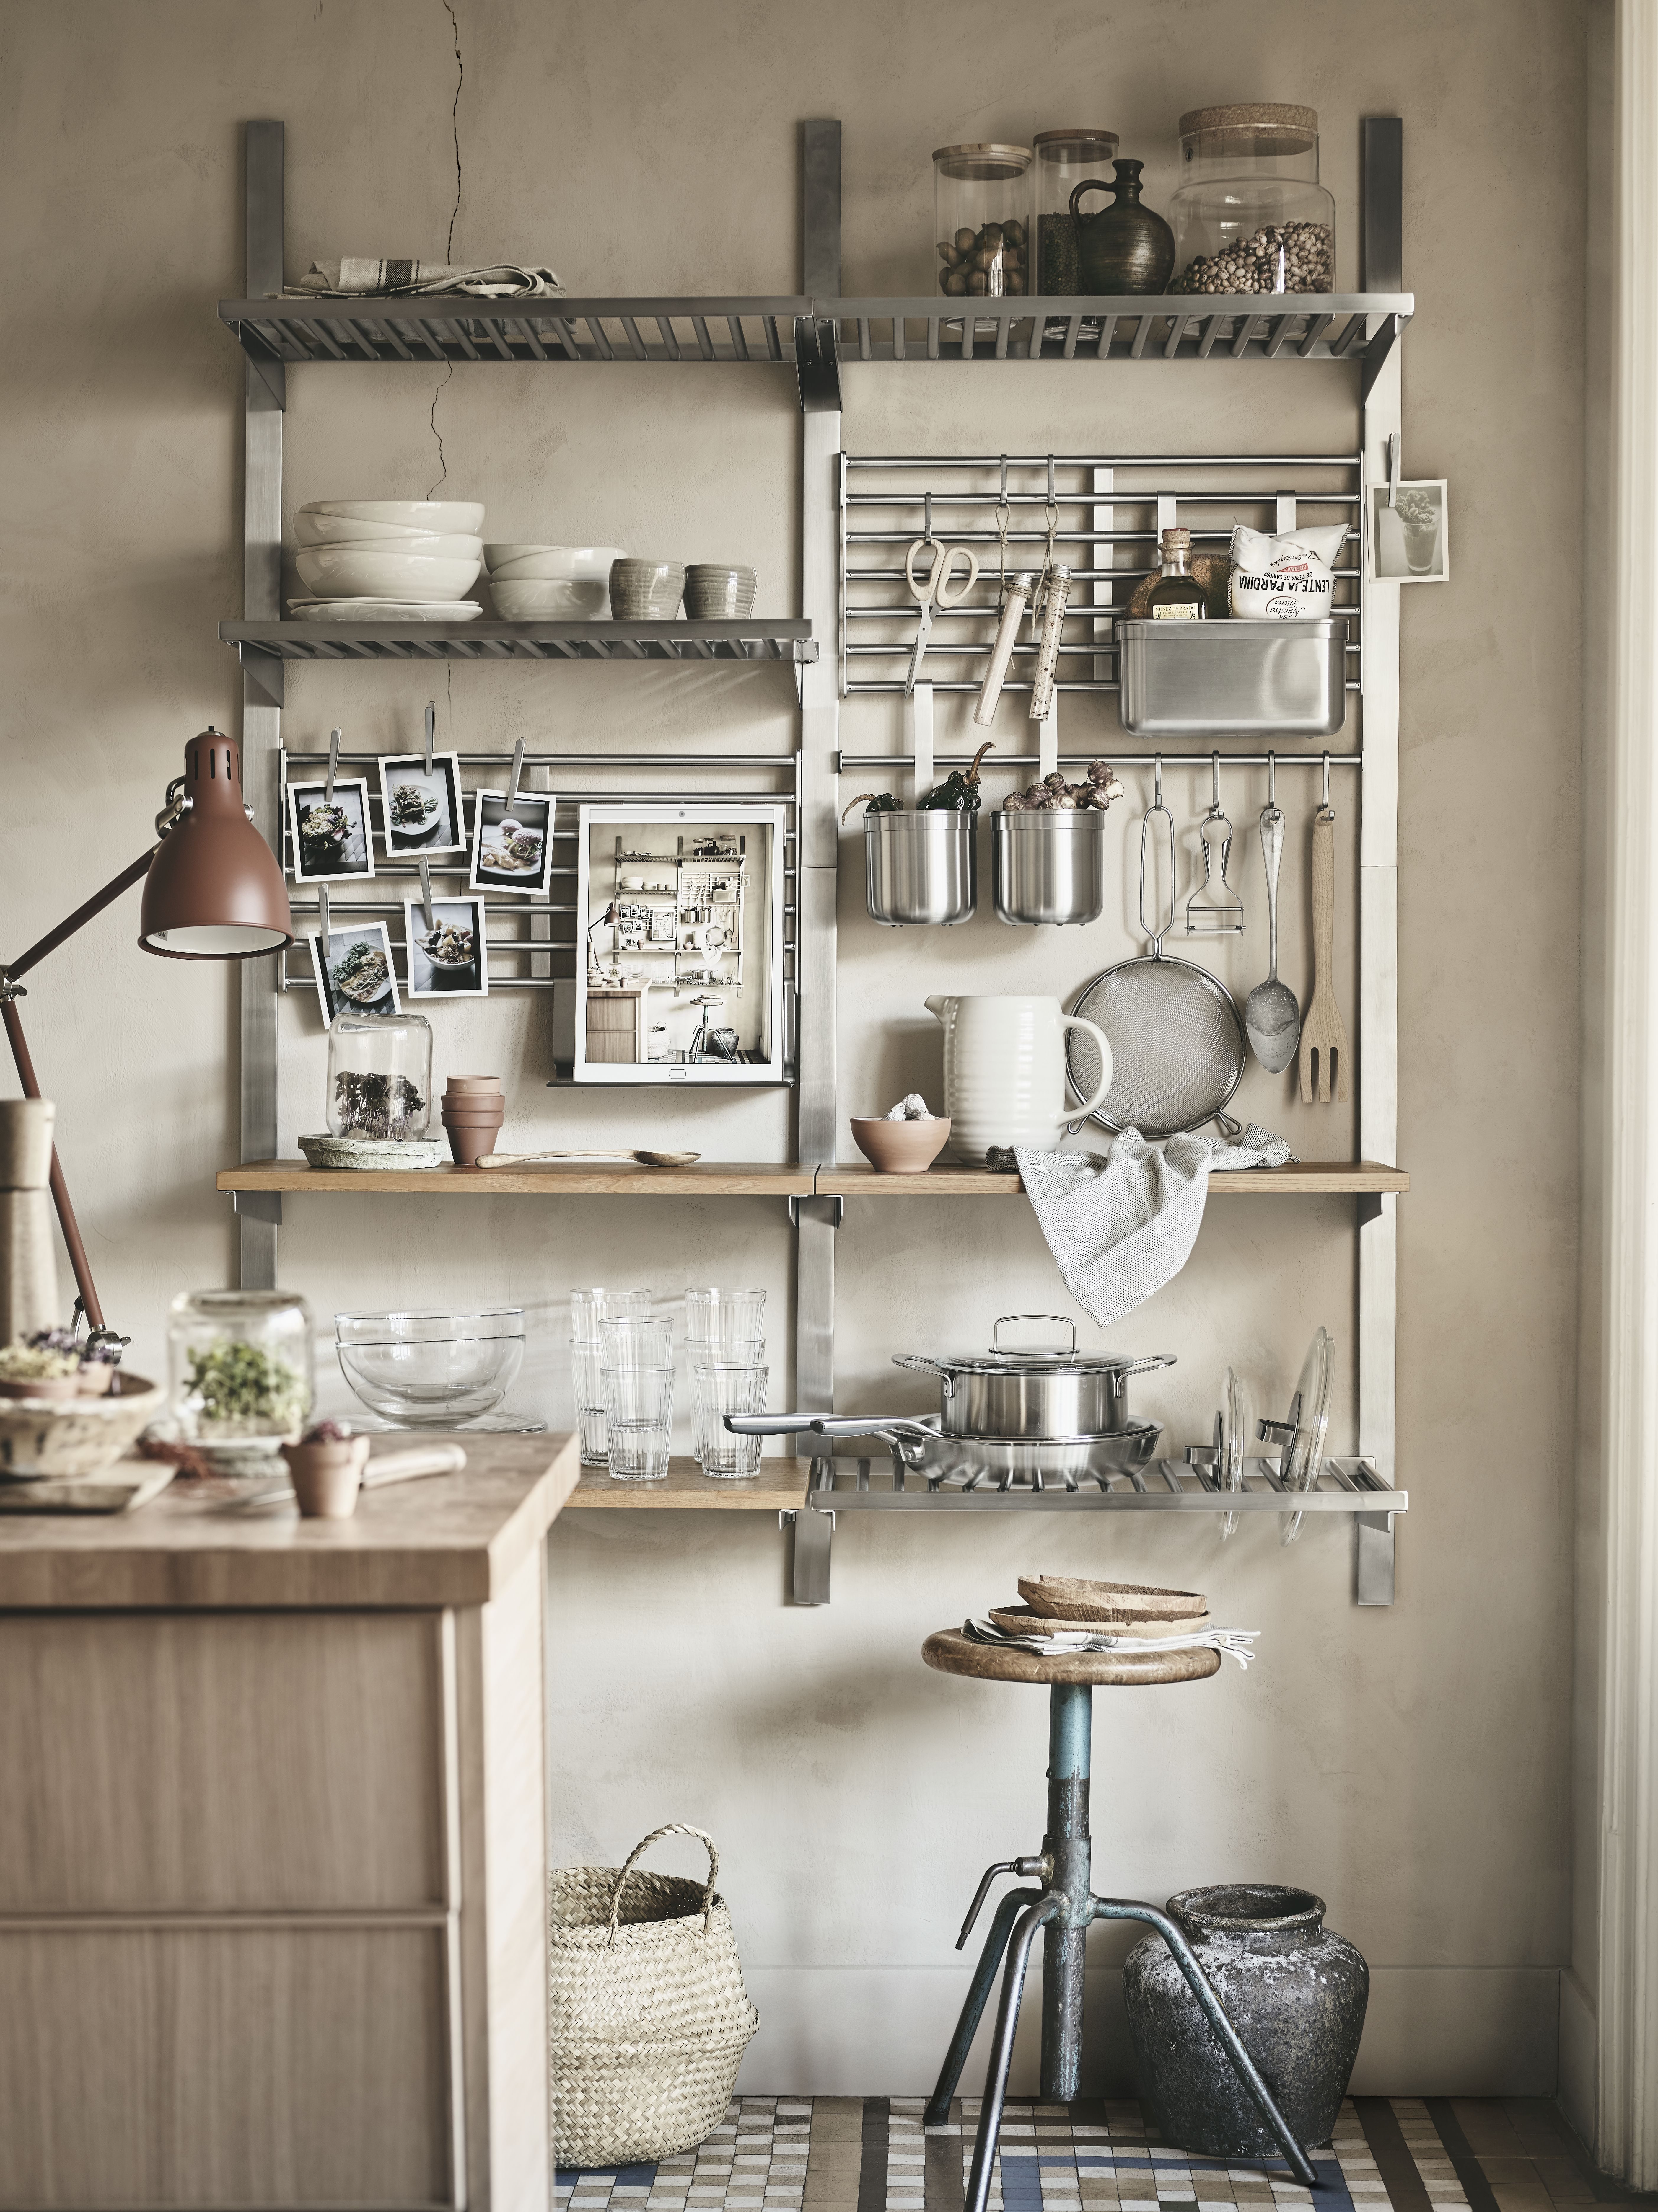 Wunderbar Offene Küchenregale Foto Von The One Thing Your Small Space Needs